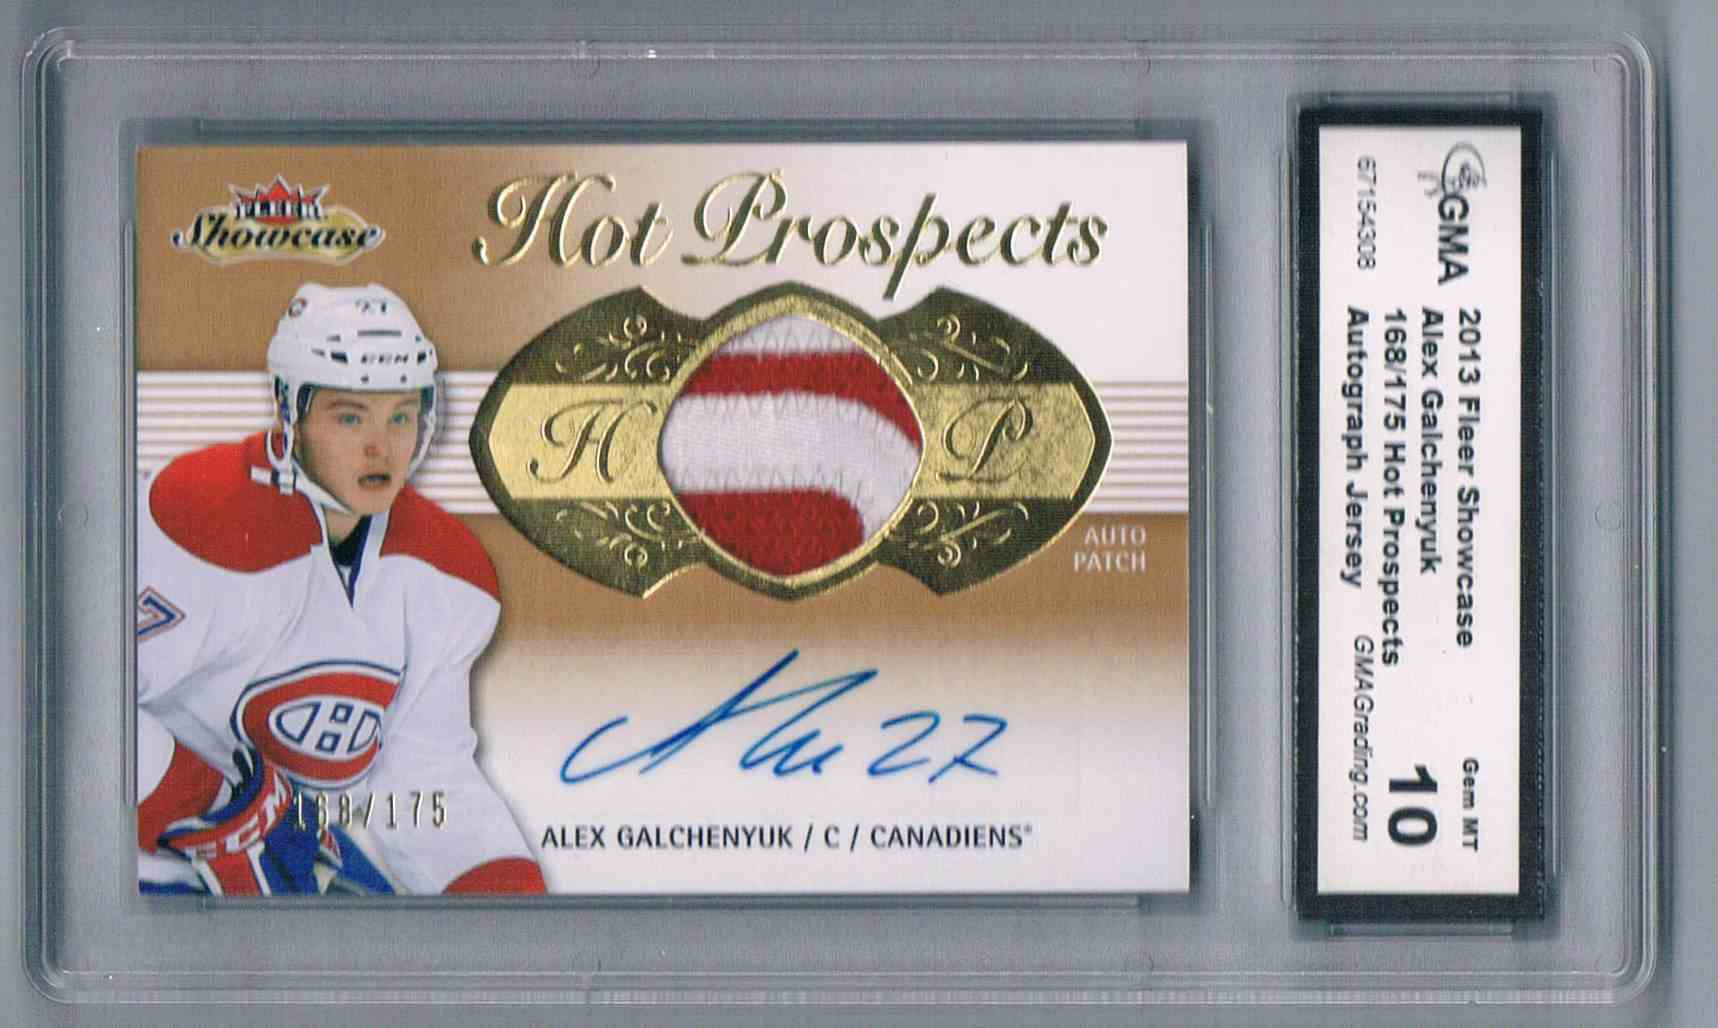 2013-14 Upper Deck Fleer Showcase Rookie Jersey Autograph Alex Galchenyuk #200 card front image